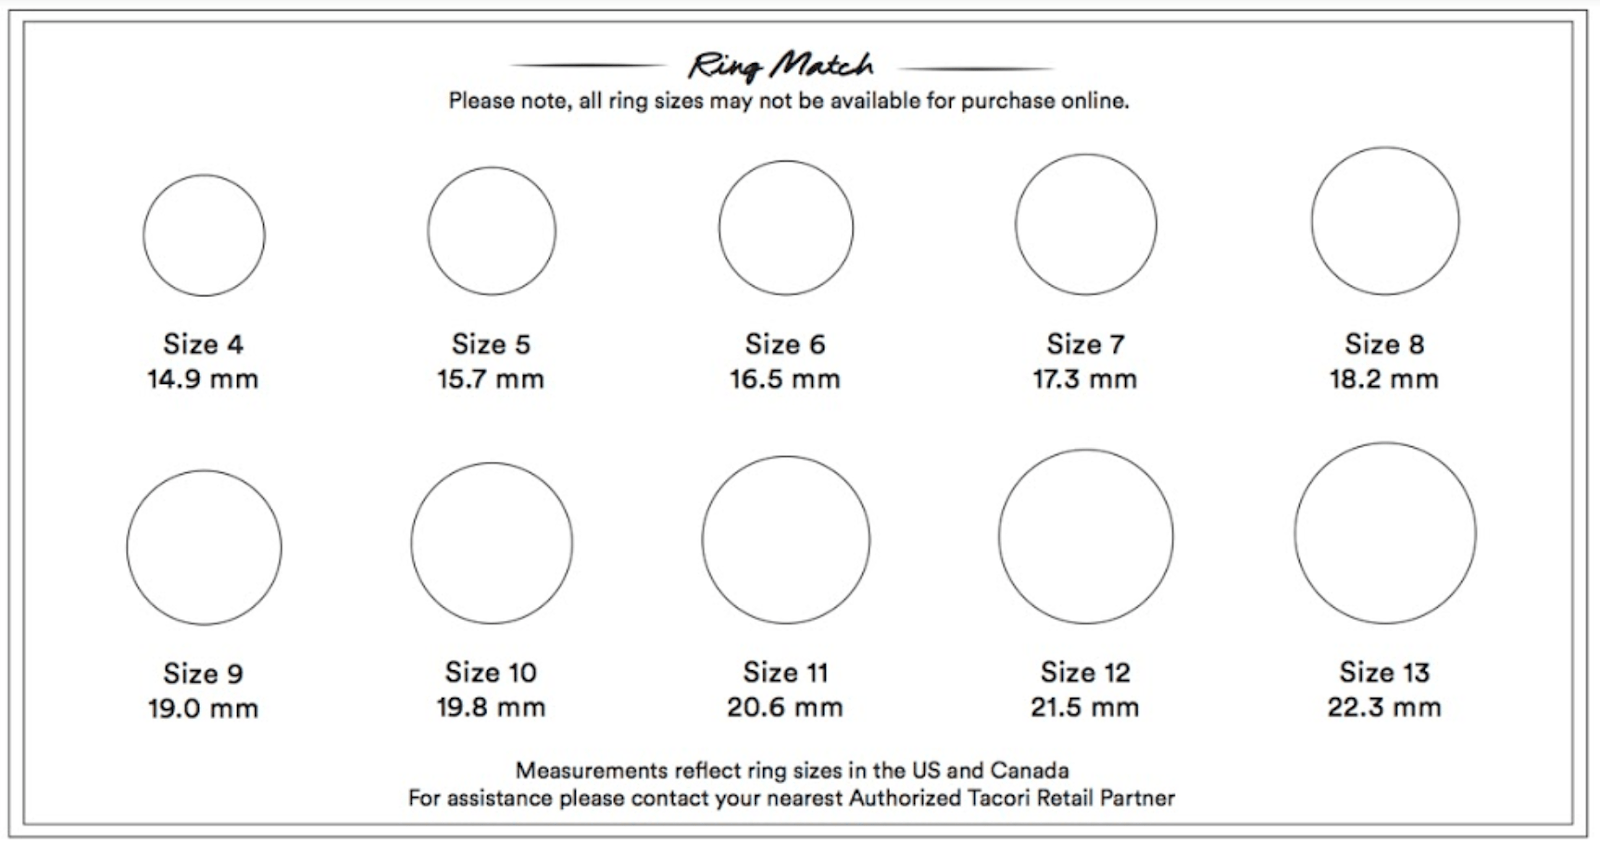 Download Tacori's Ring Size Guide